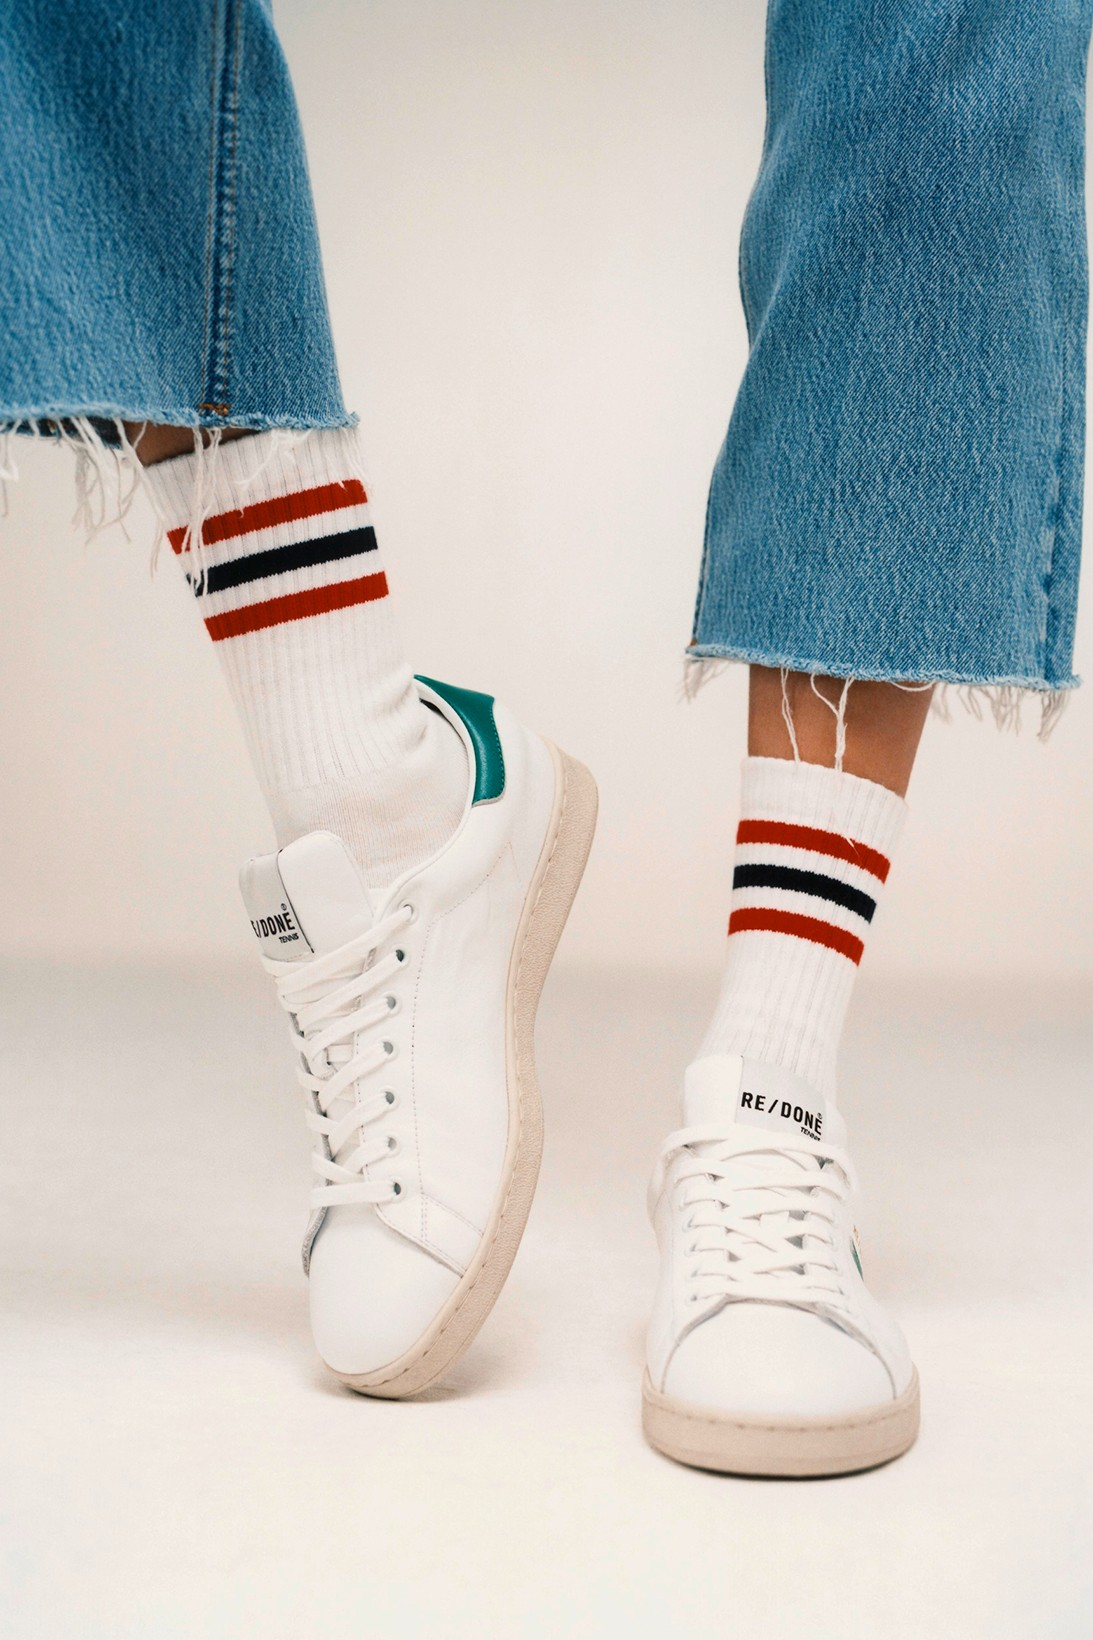 RE/DONE's Women's Sneaker Collection